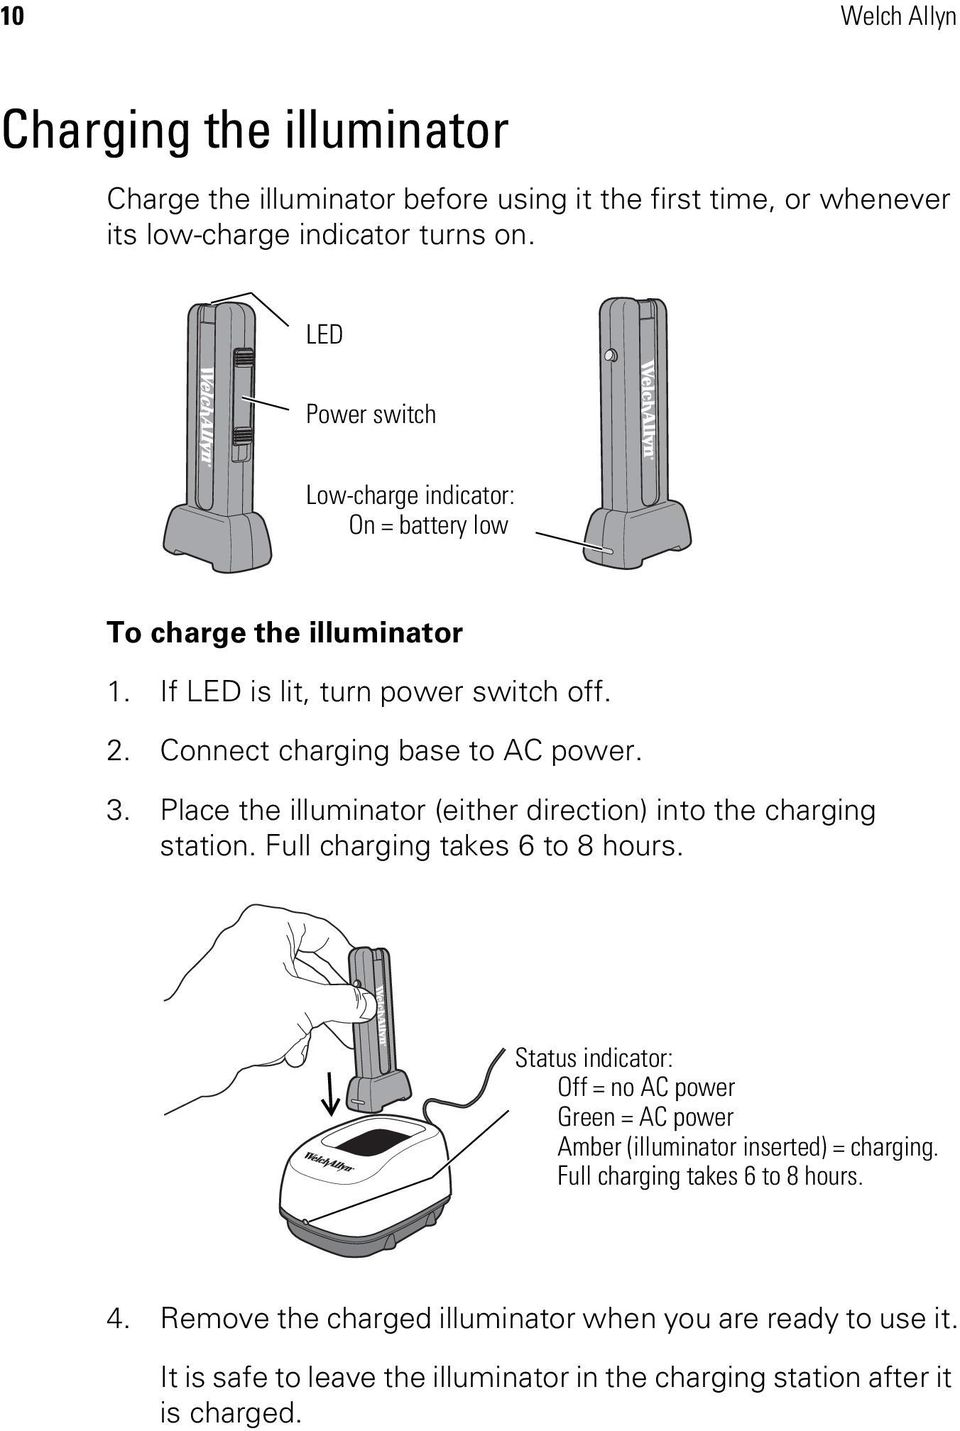 Place the illuminator (either direction) into the charging station. Full charging takes 6 to 8 hours.